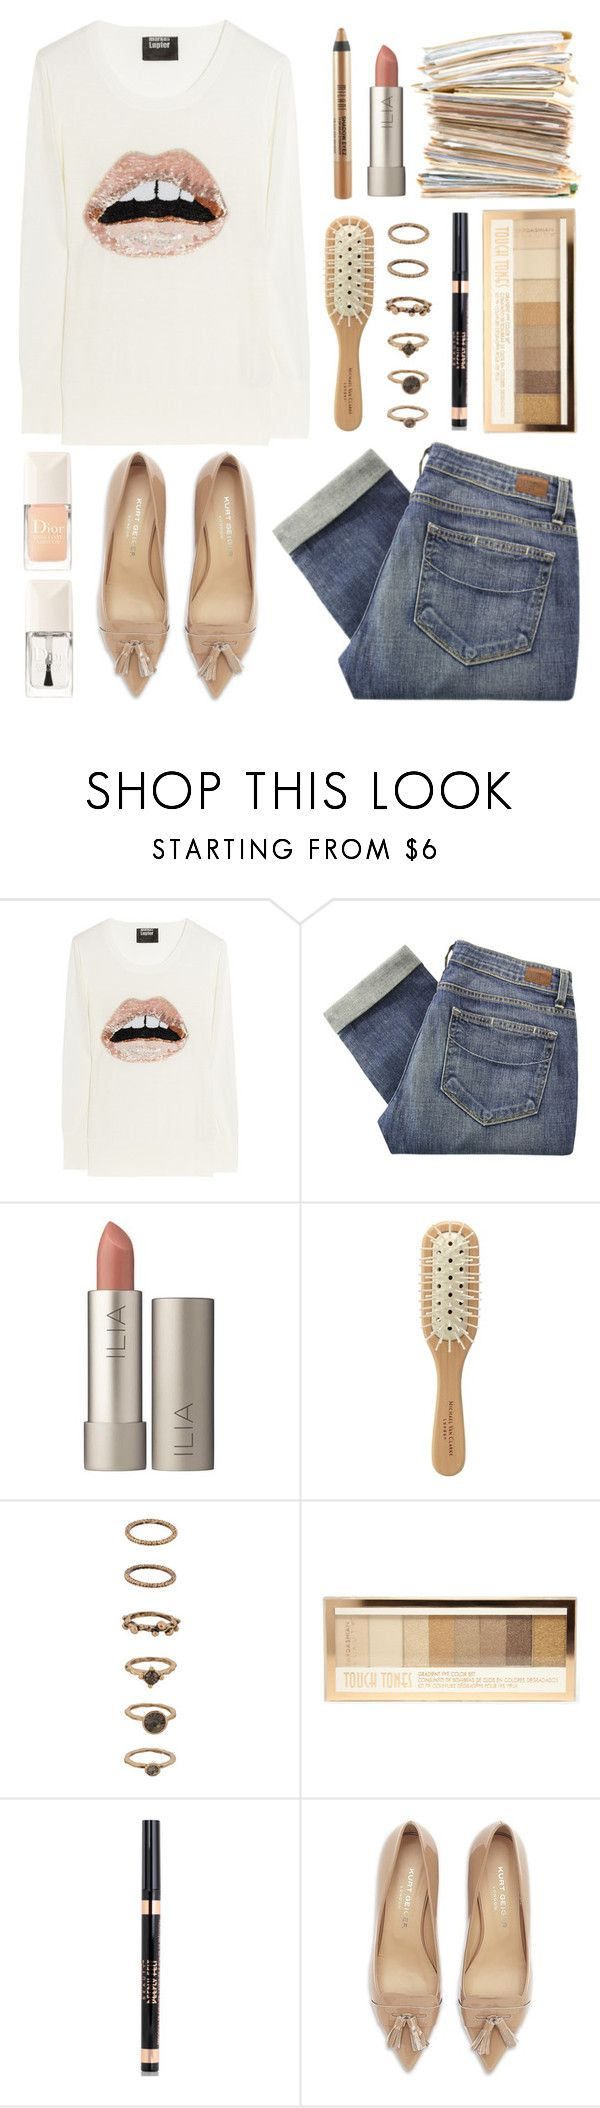 """""""''Band-aids don't fix bullet holes.''"""" by felytery ❤ liked on Polyvore featuring Markus Lupfer, Paige Denim, Ilia, Michael Van Clarke, Forever 21, Kardashian Beauty and Kurt Geiger"""